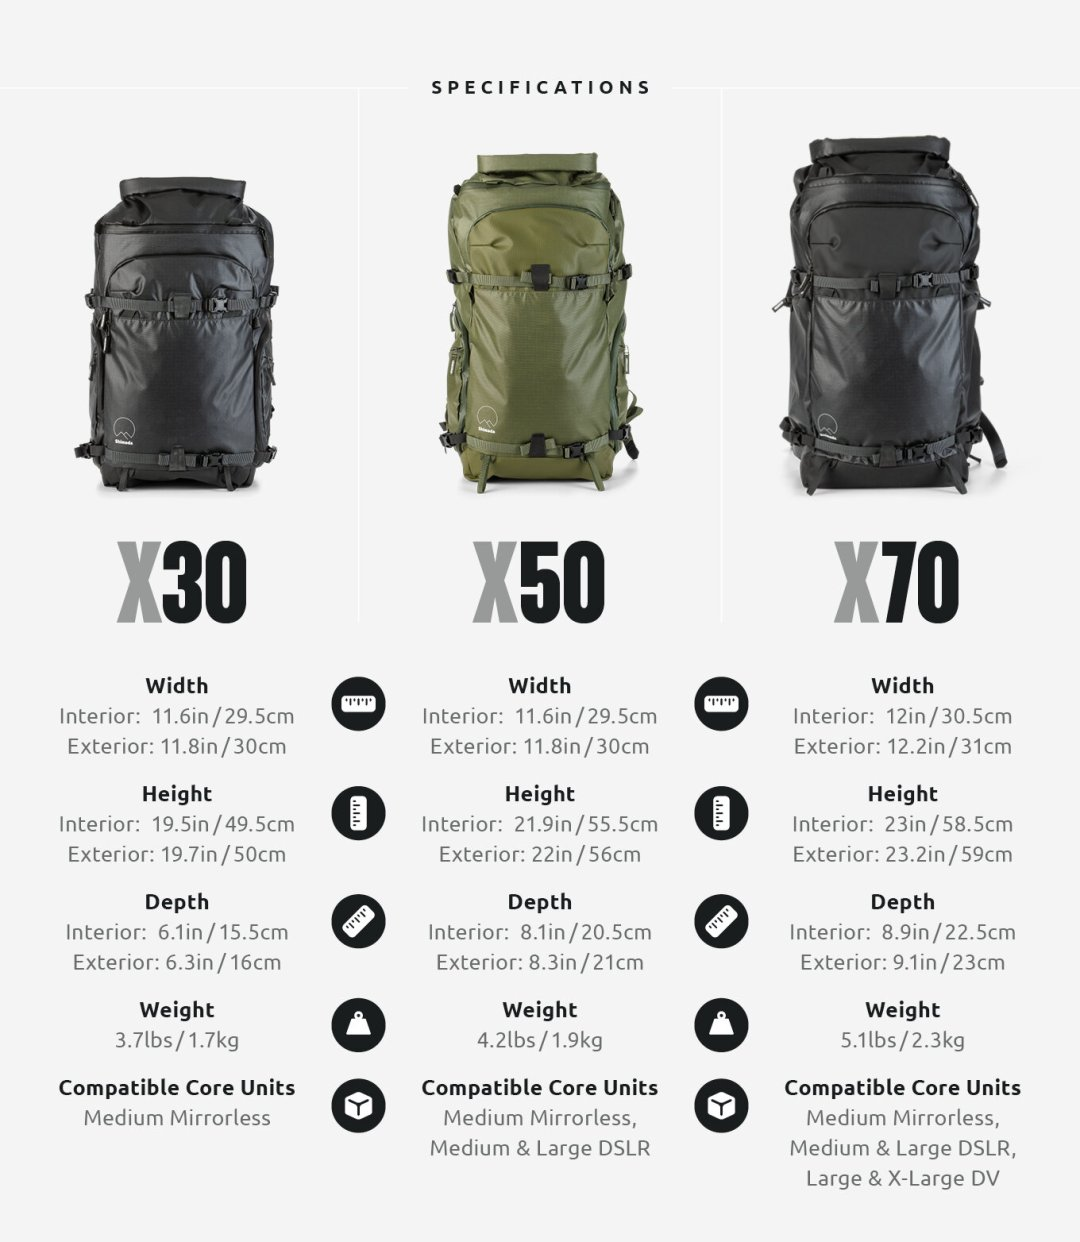 Shimoda Action X series backpack specifications